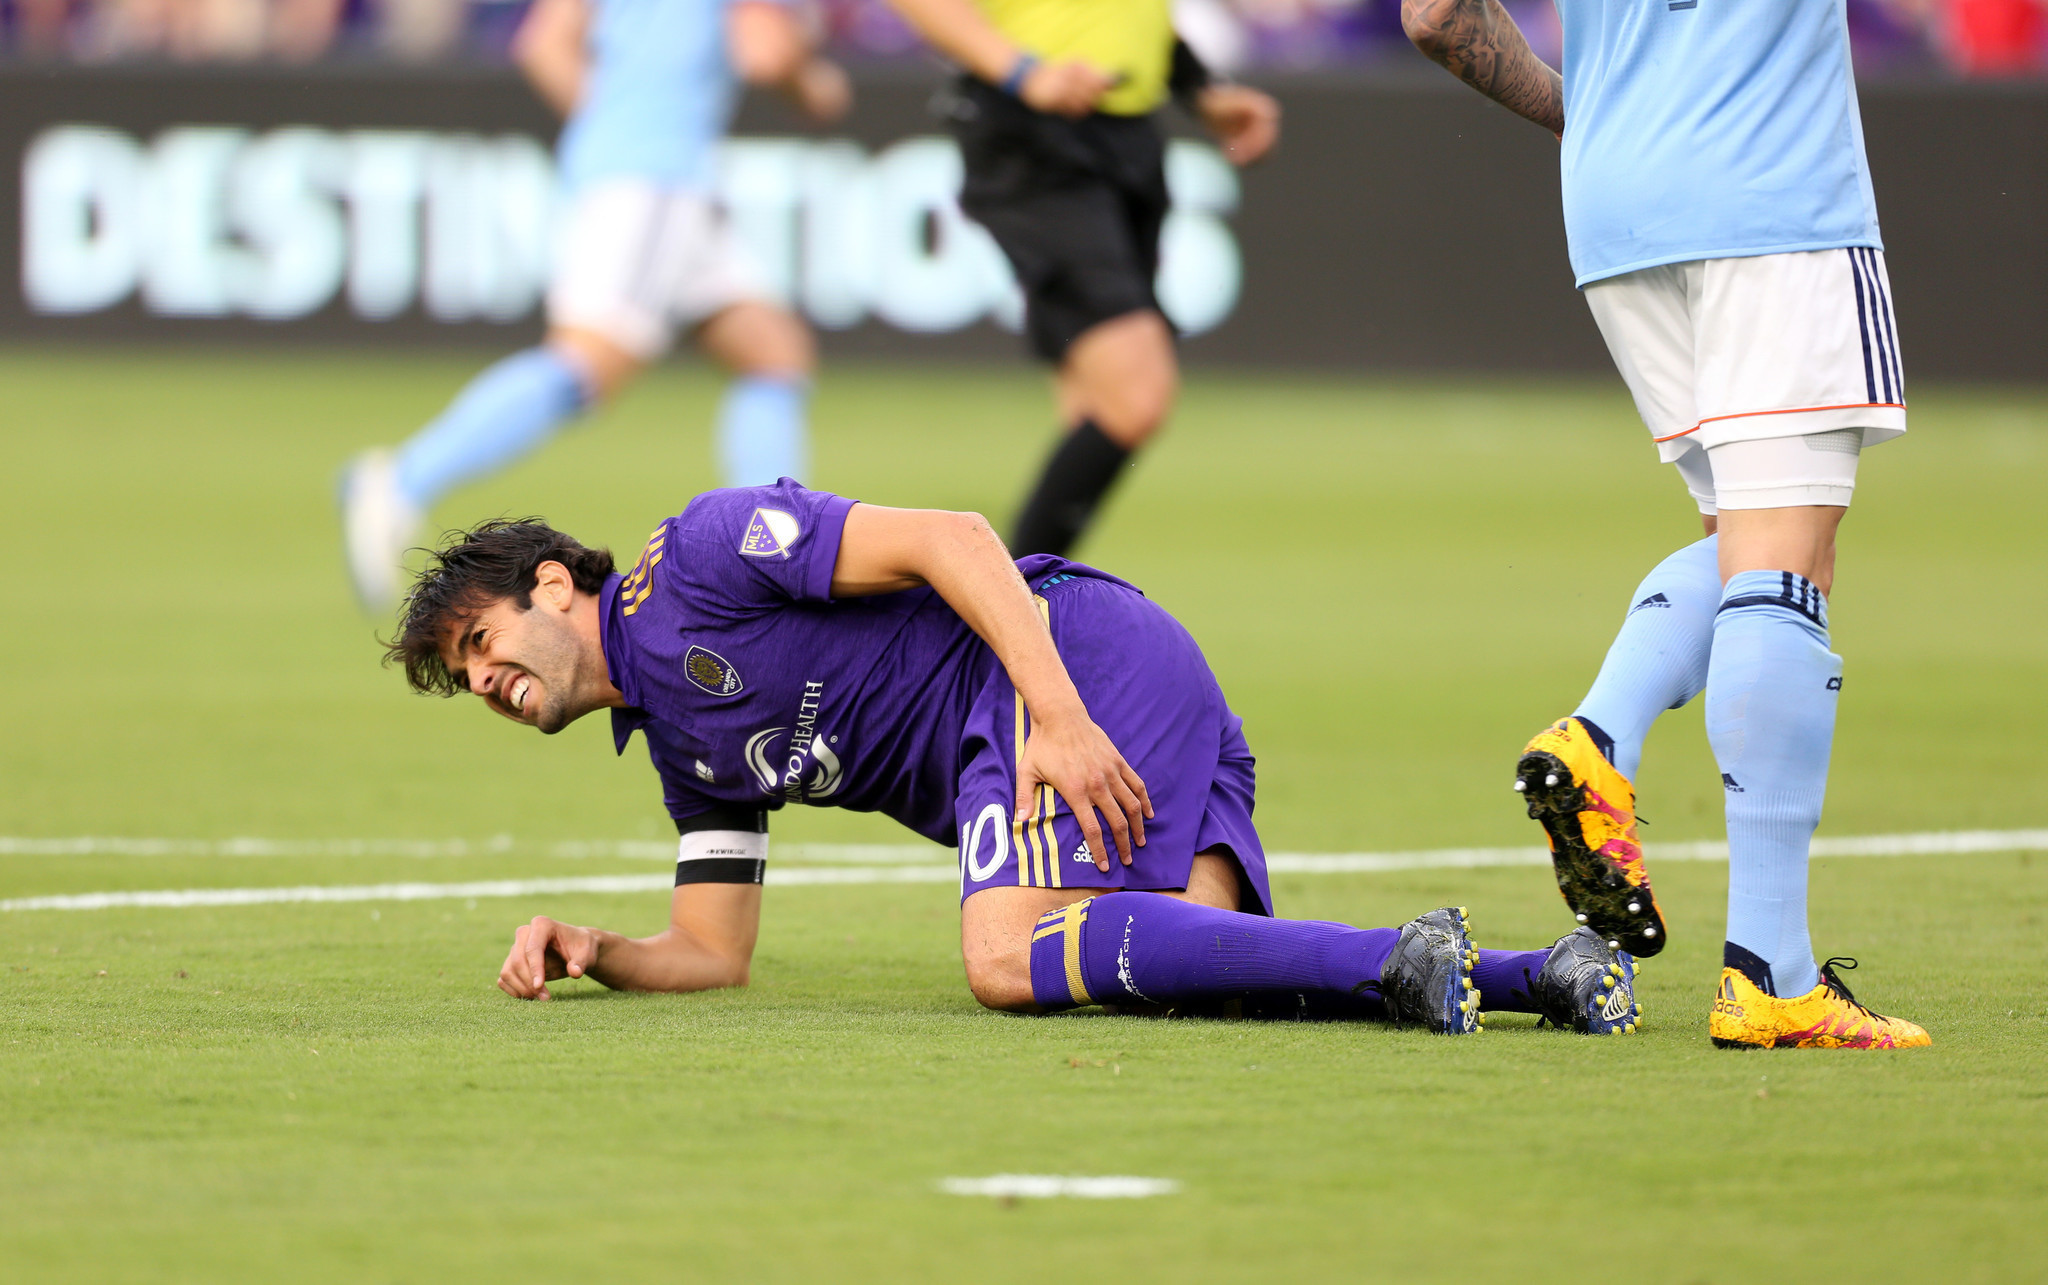 Os-sp-kaka-out-six-weeks-with-hamstring-pull-20170306